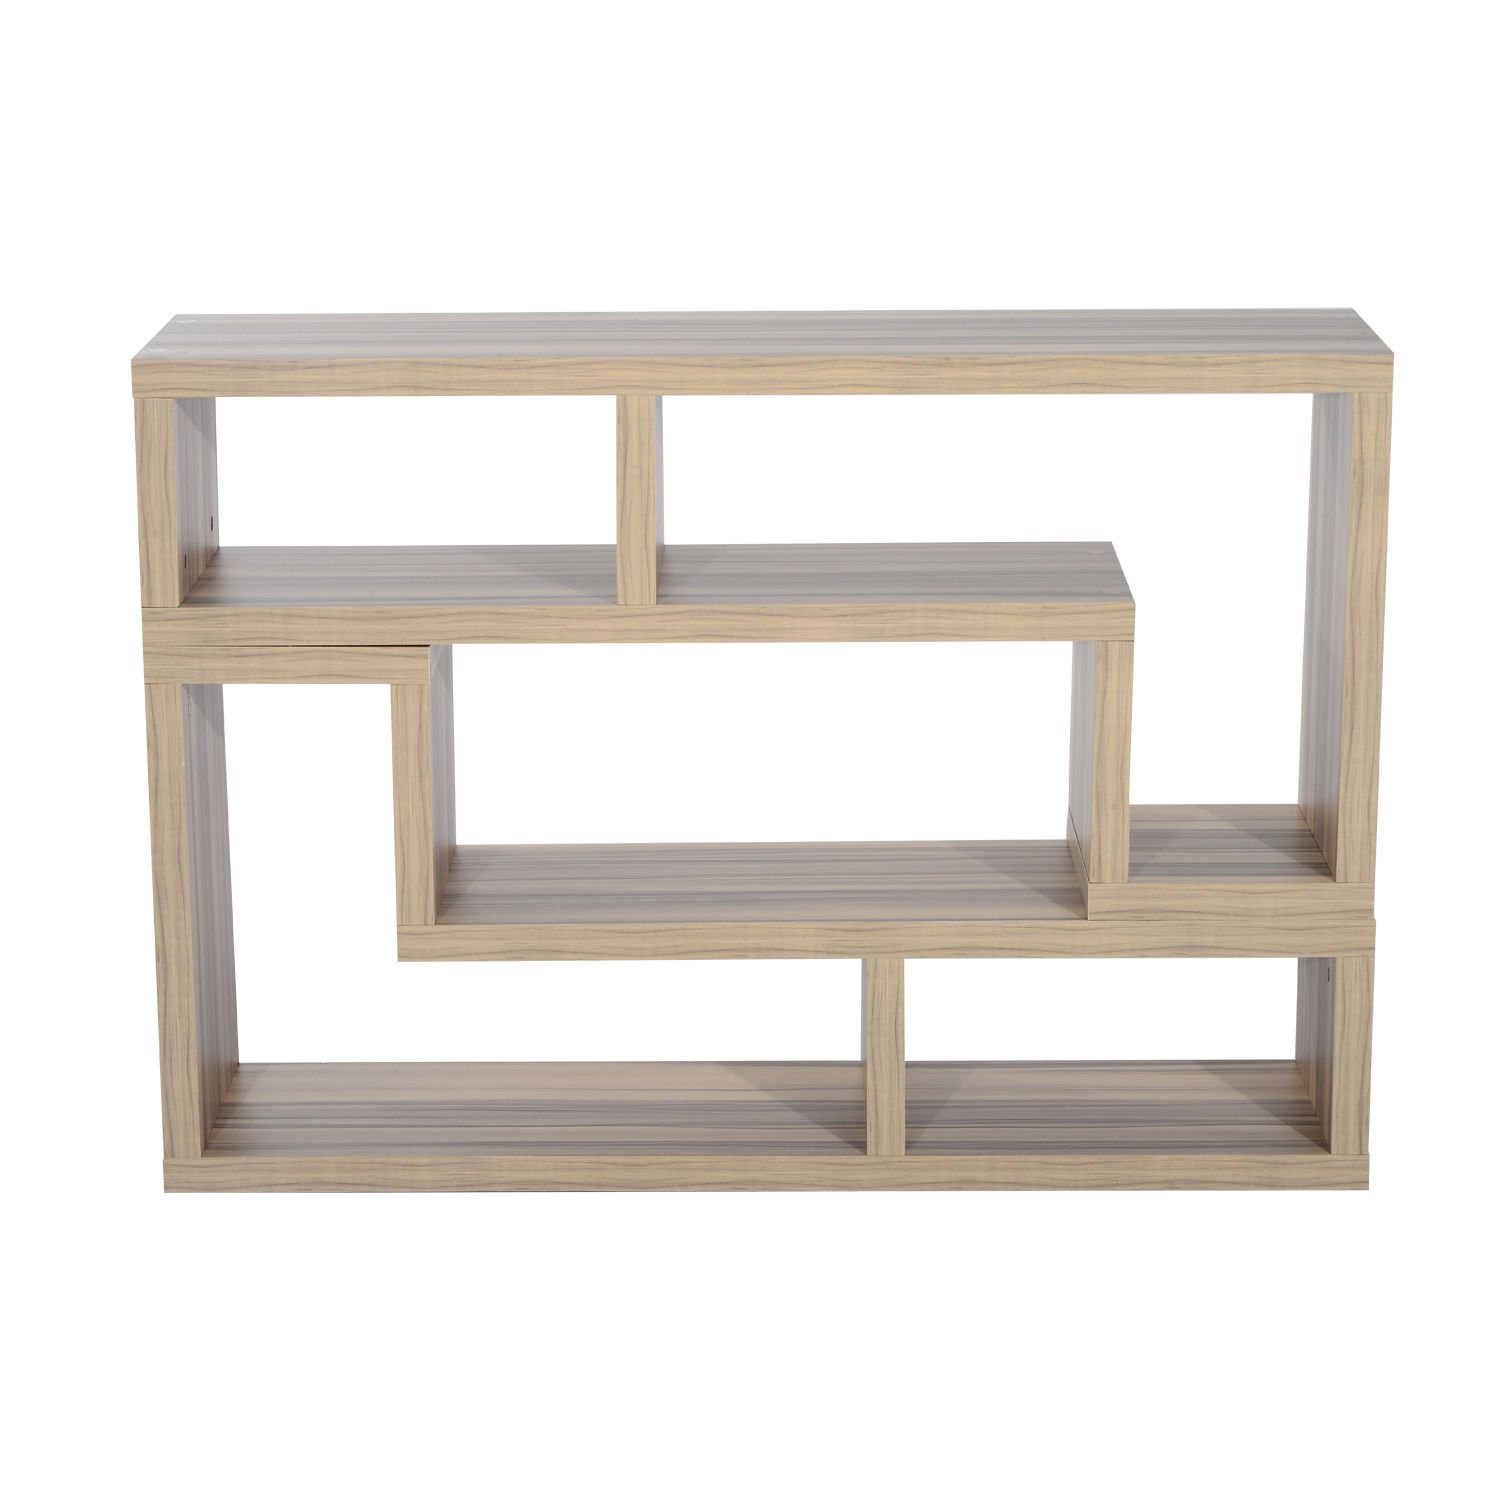 TV Stand Entertainment Home Media Cabinet Console Wood Storage Furniture